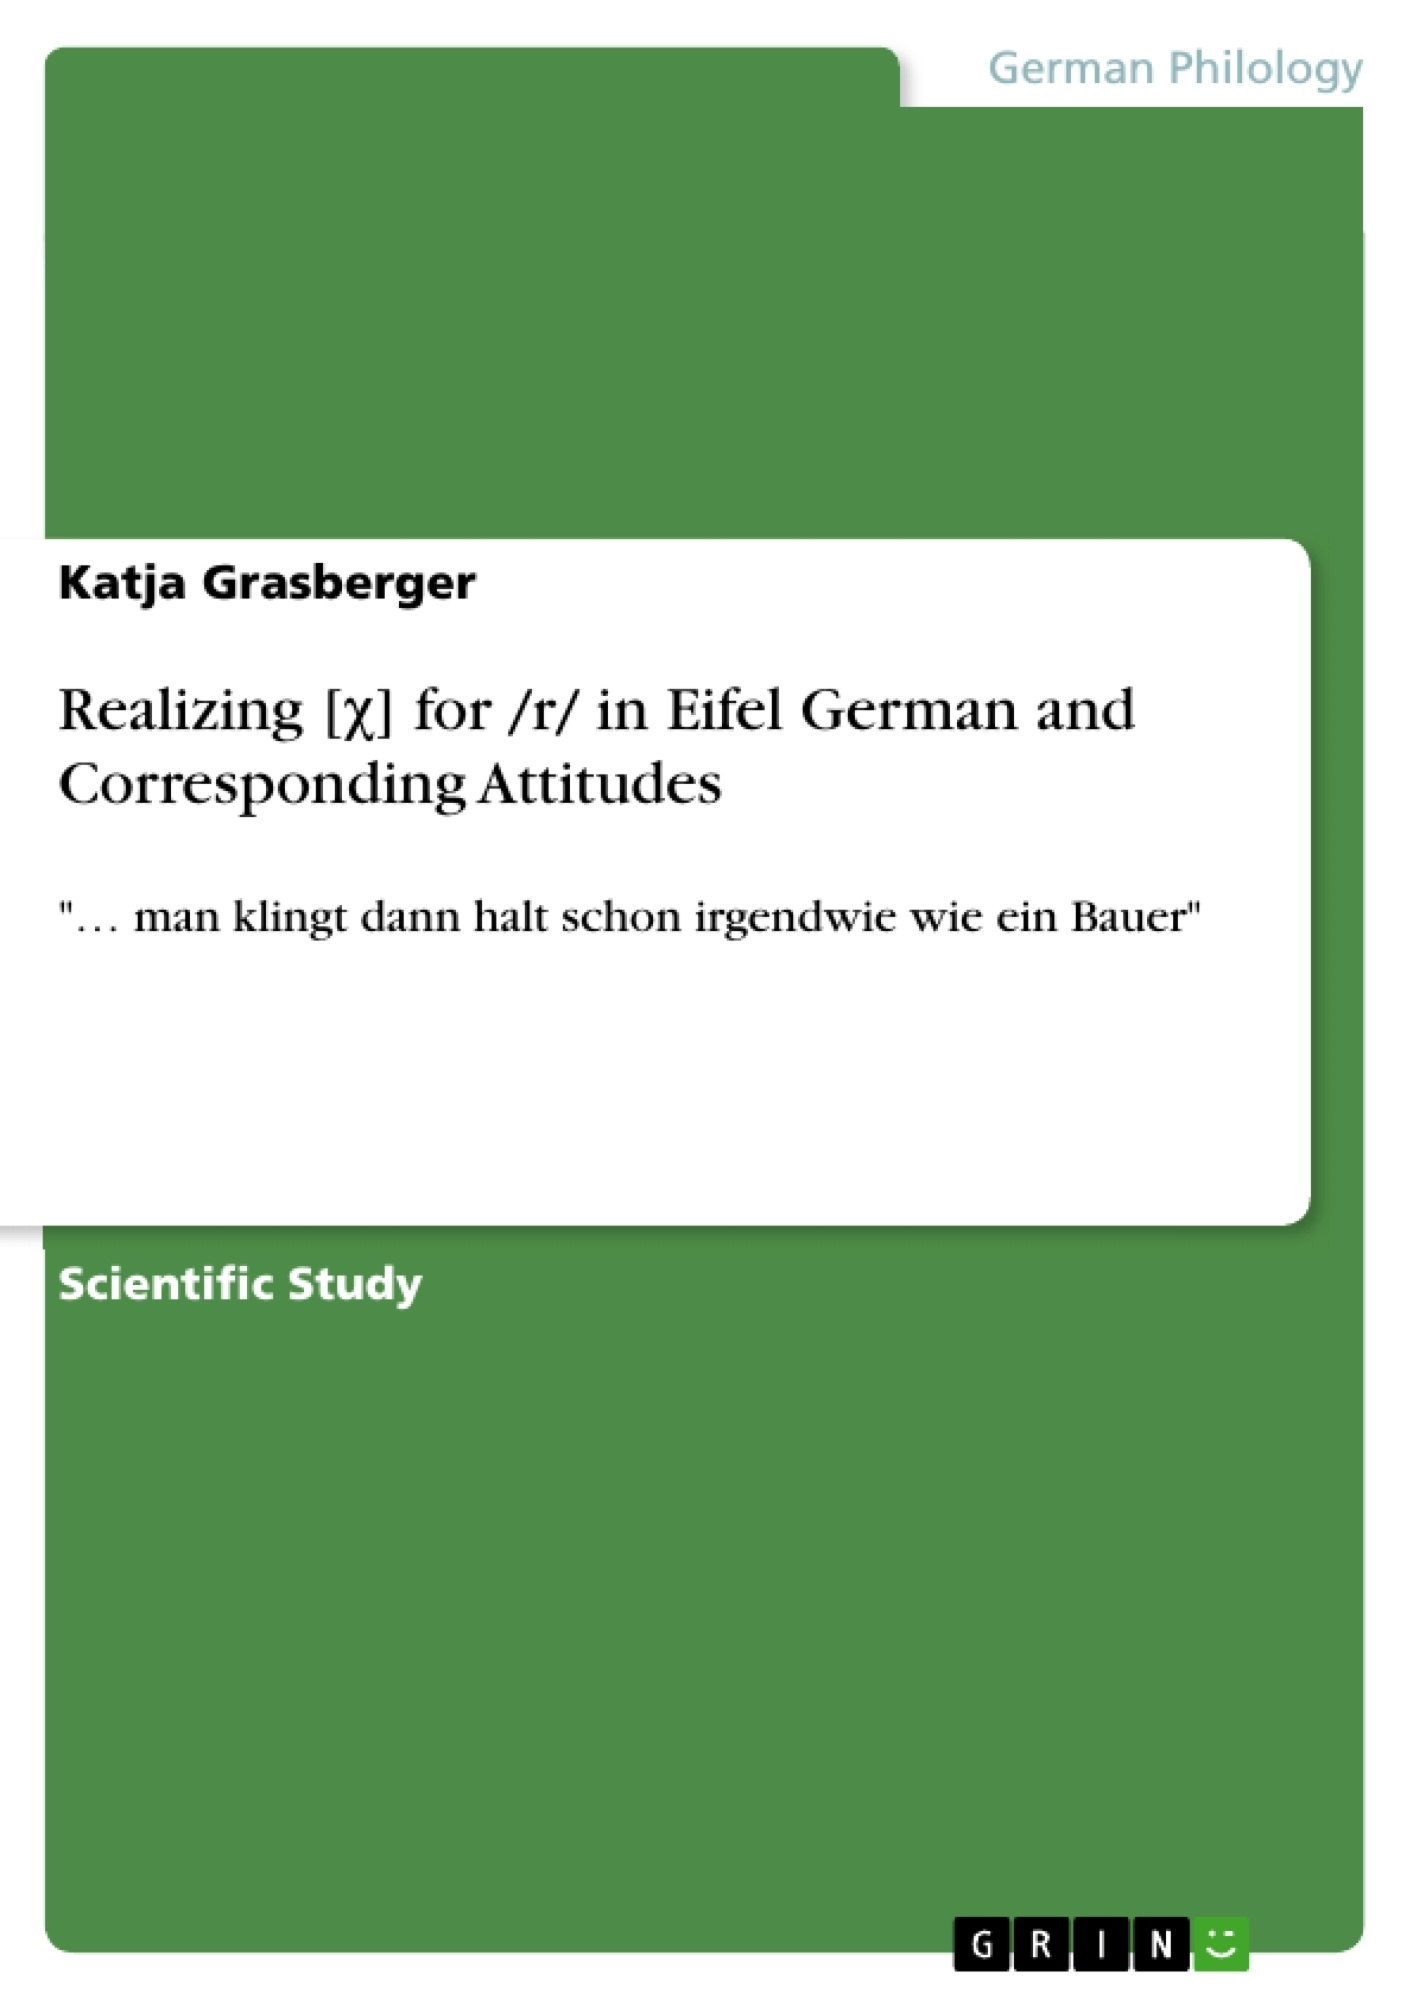 Title: Realizing [χ] for /r/ in Eifel German and Corresponding Attitudes